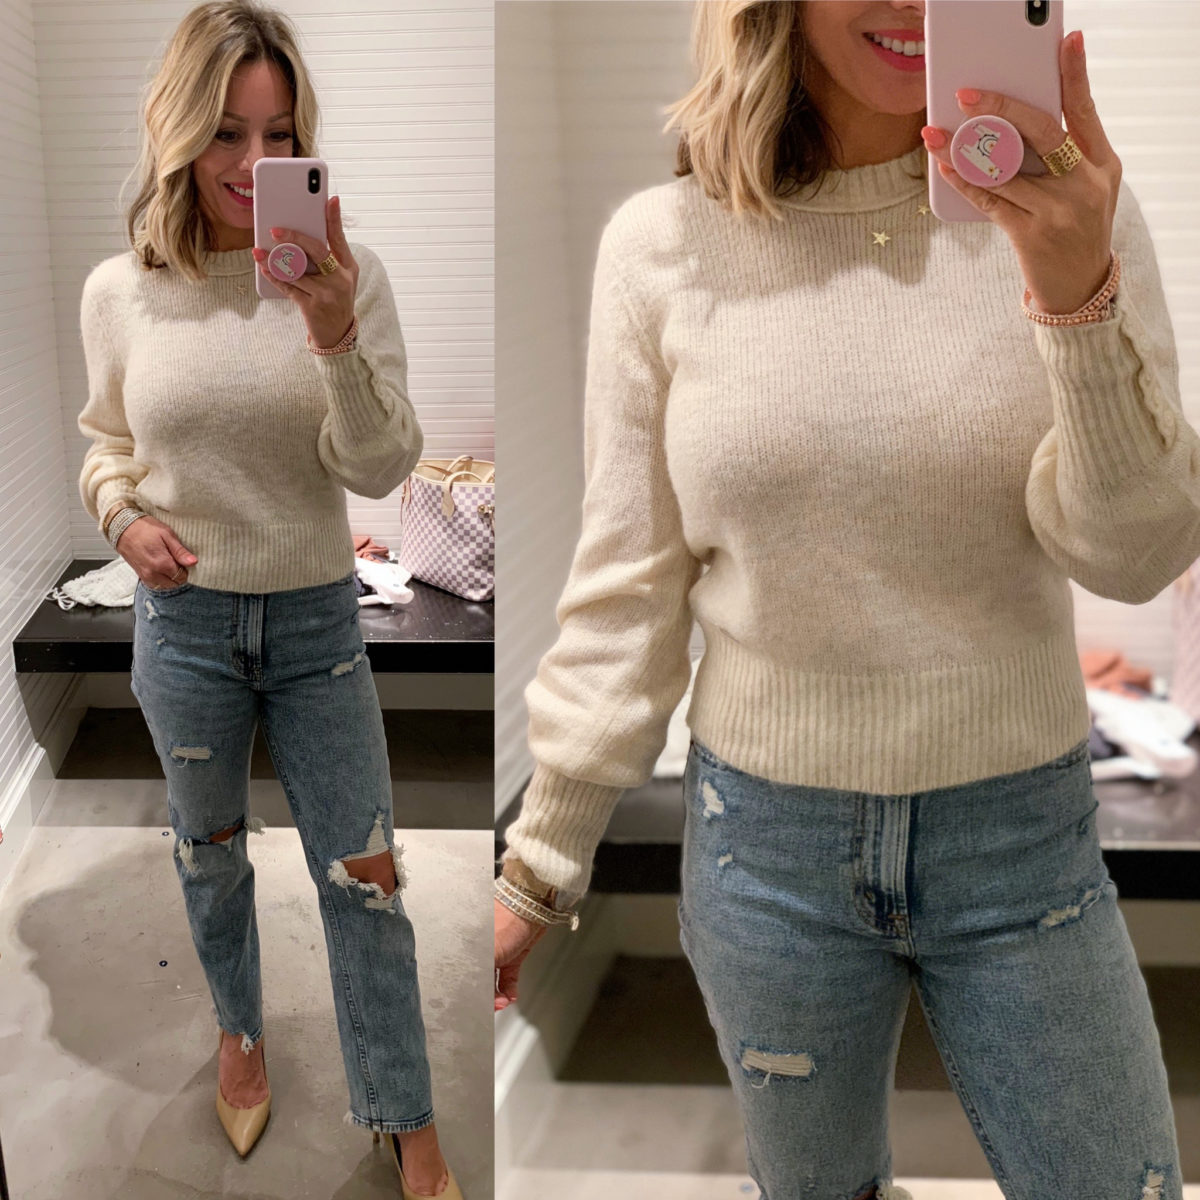 Abercrombie jeans, Cream Crewneck Sweater with Button Sleeve, Nude Heels